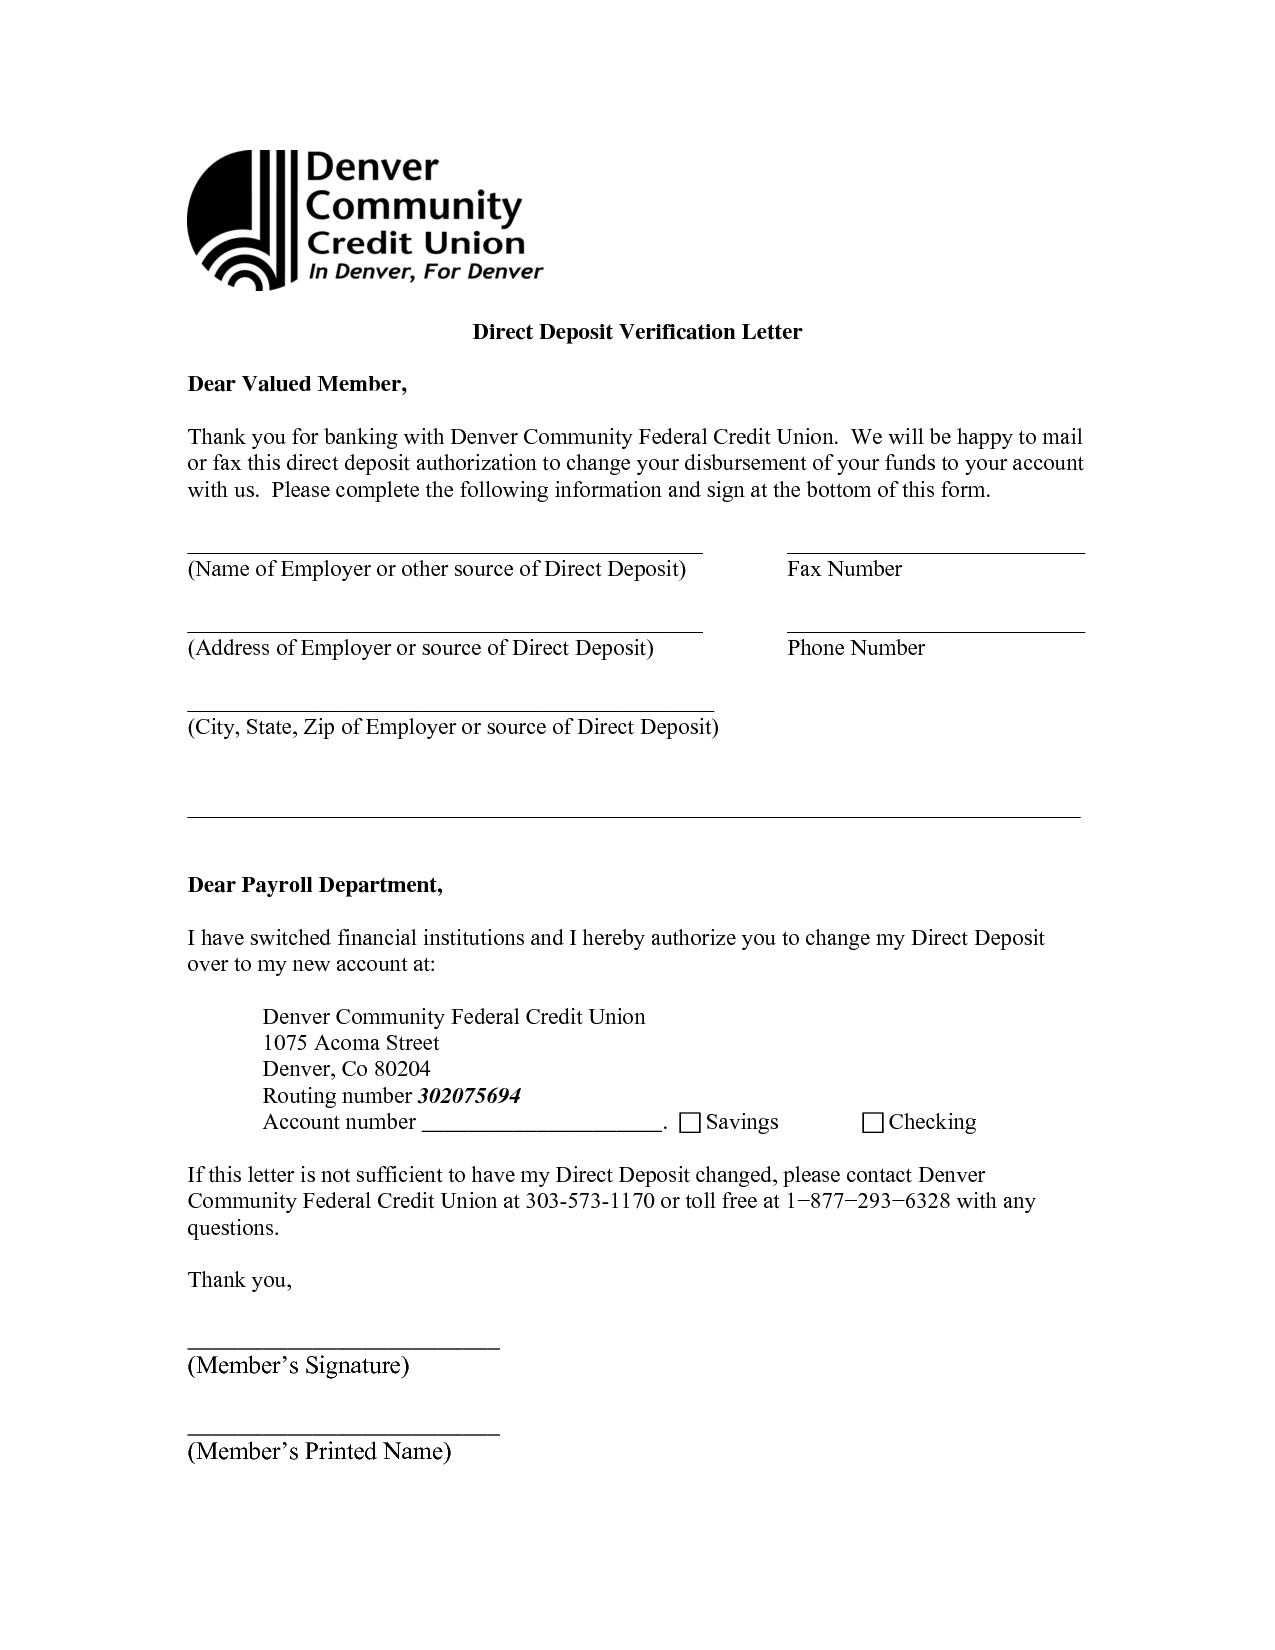 Bank Verification Letter Sample Account Authorization Printable